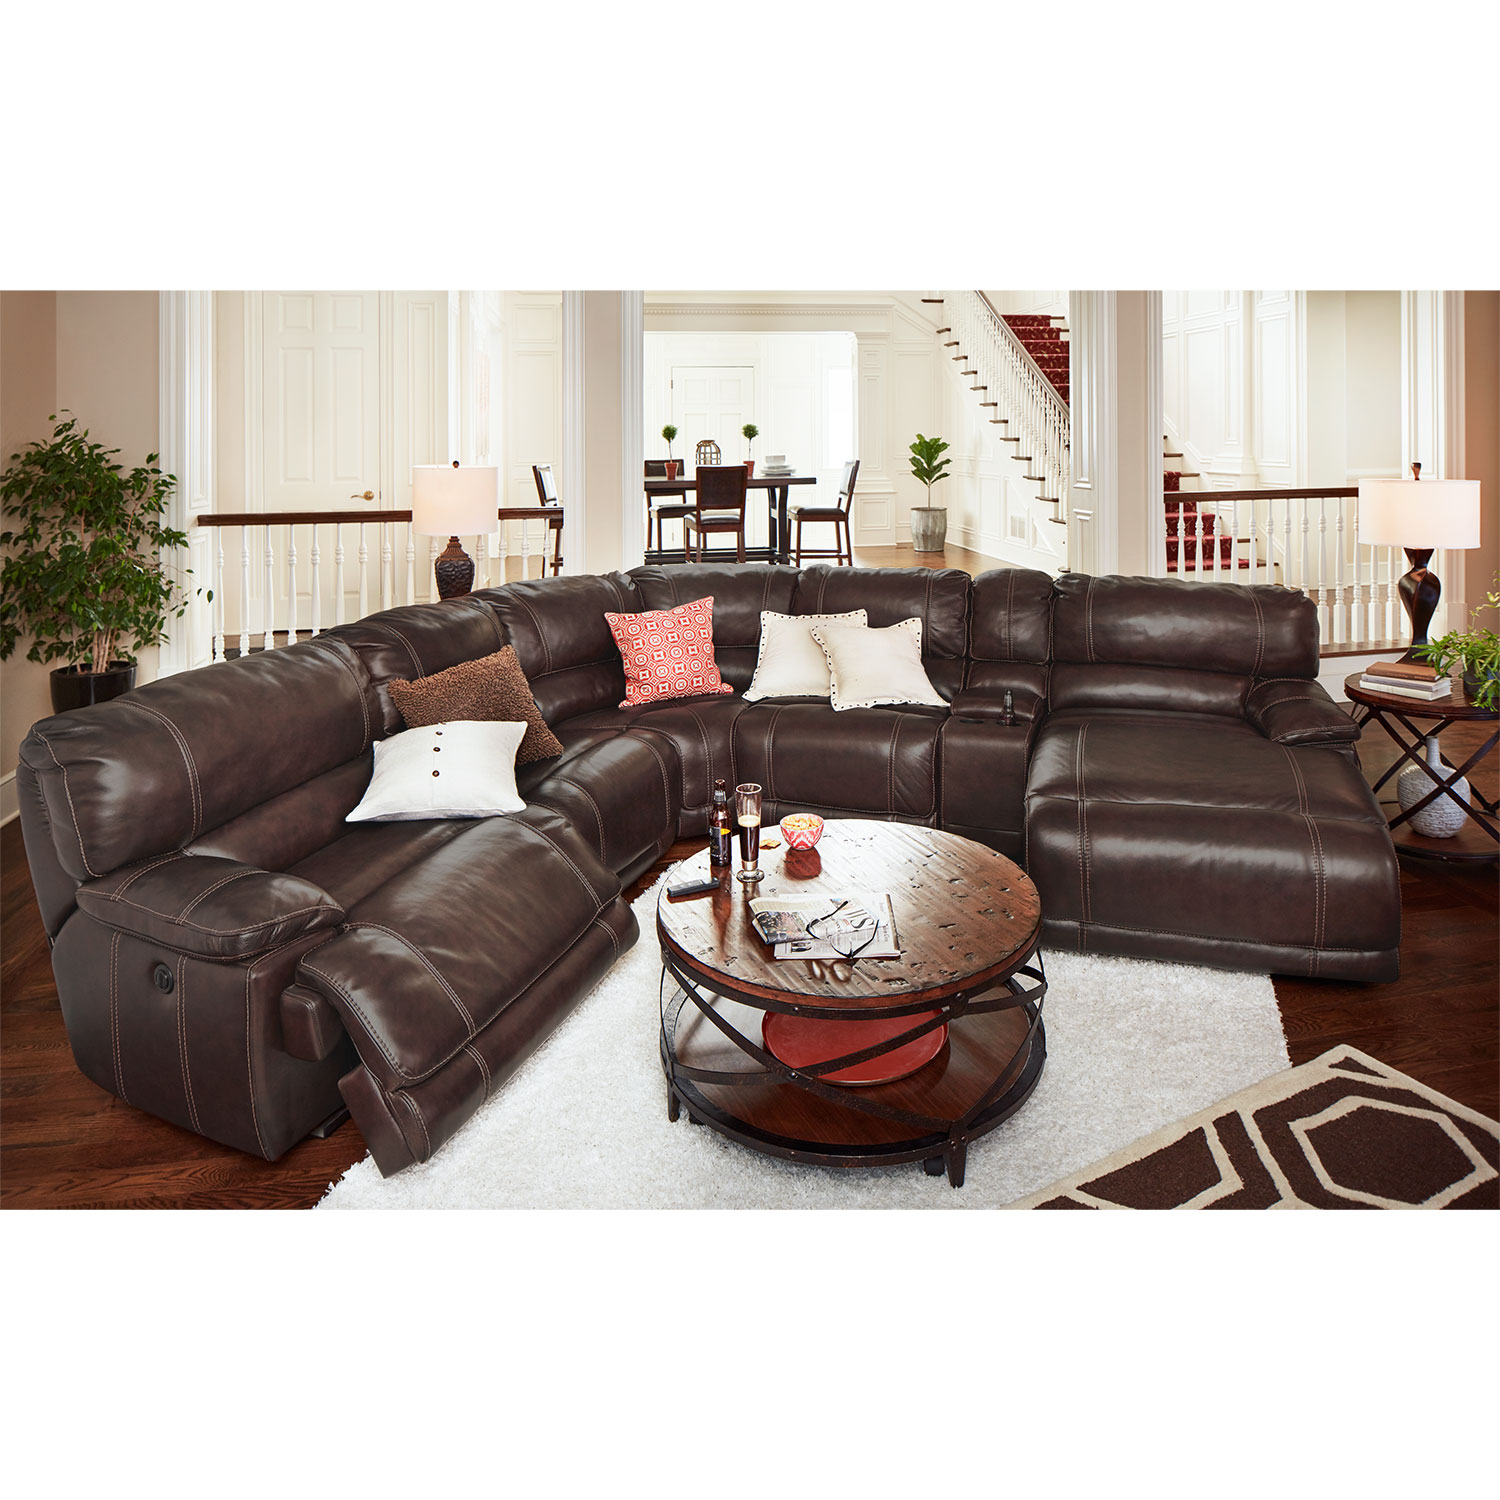 ashley recliner power reclining clsd design zaiden gallery by signature asl sectional antique media